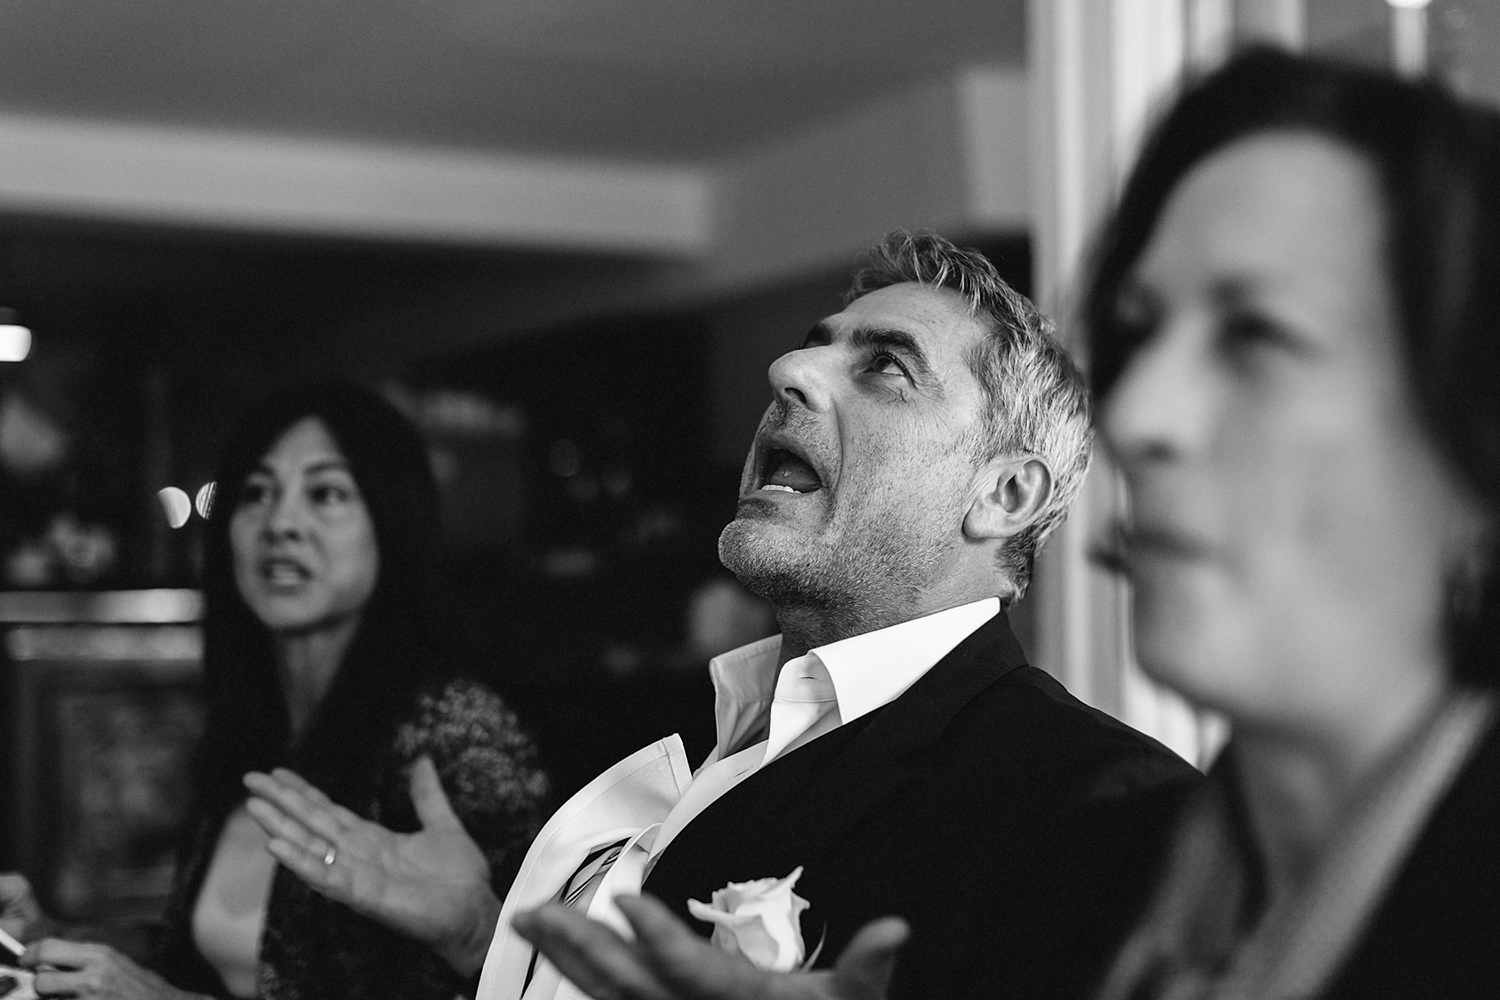 bw-toronto-restaurant-elopement-intimate-wedding-guests-candid.jpg